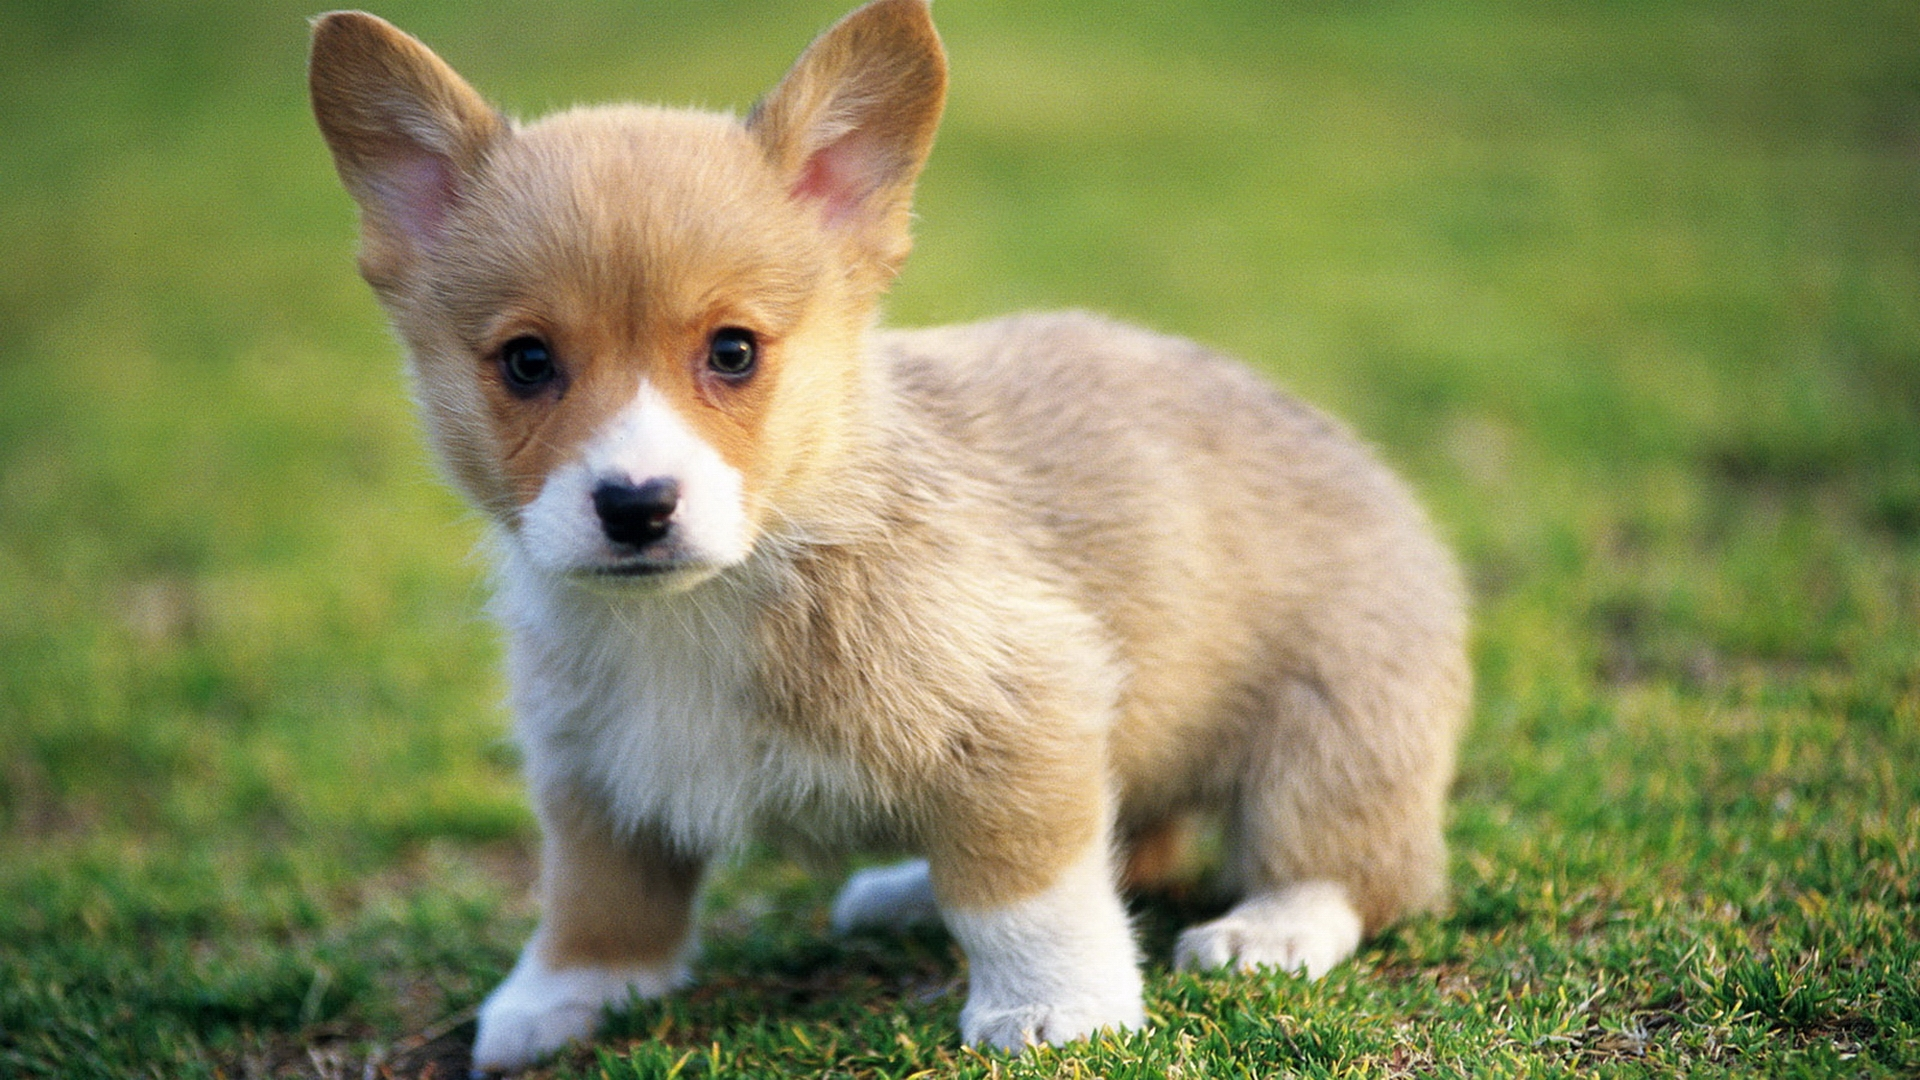 adorable corgi wallpaper